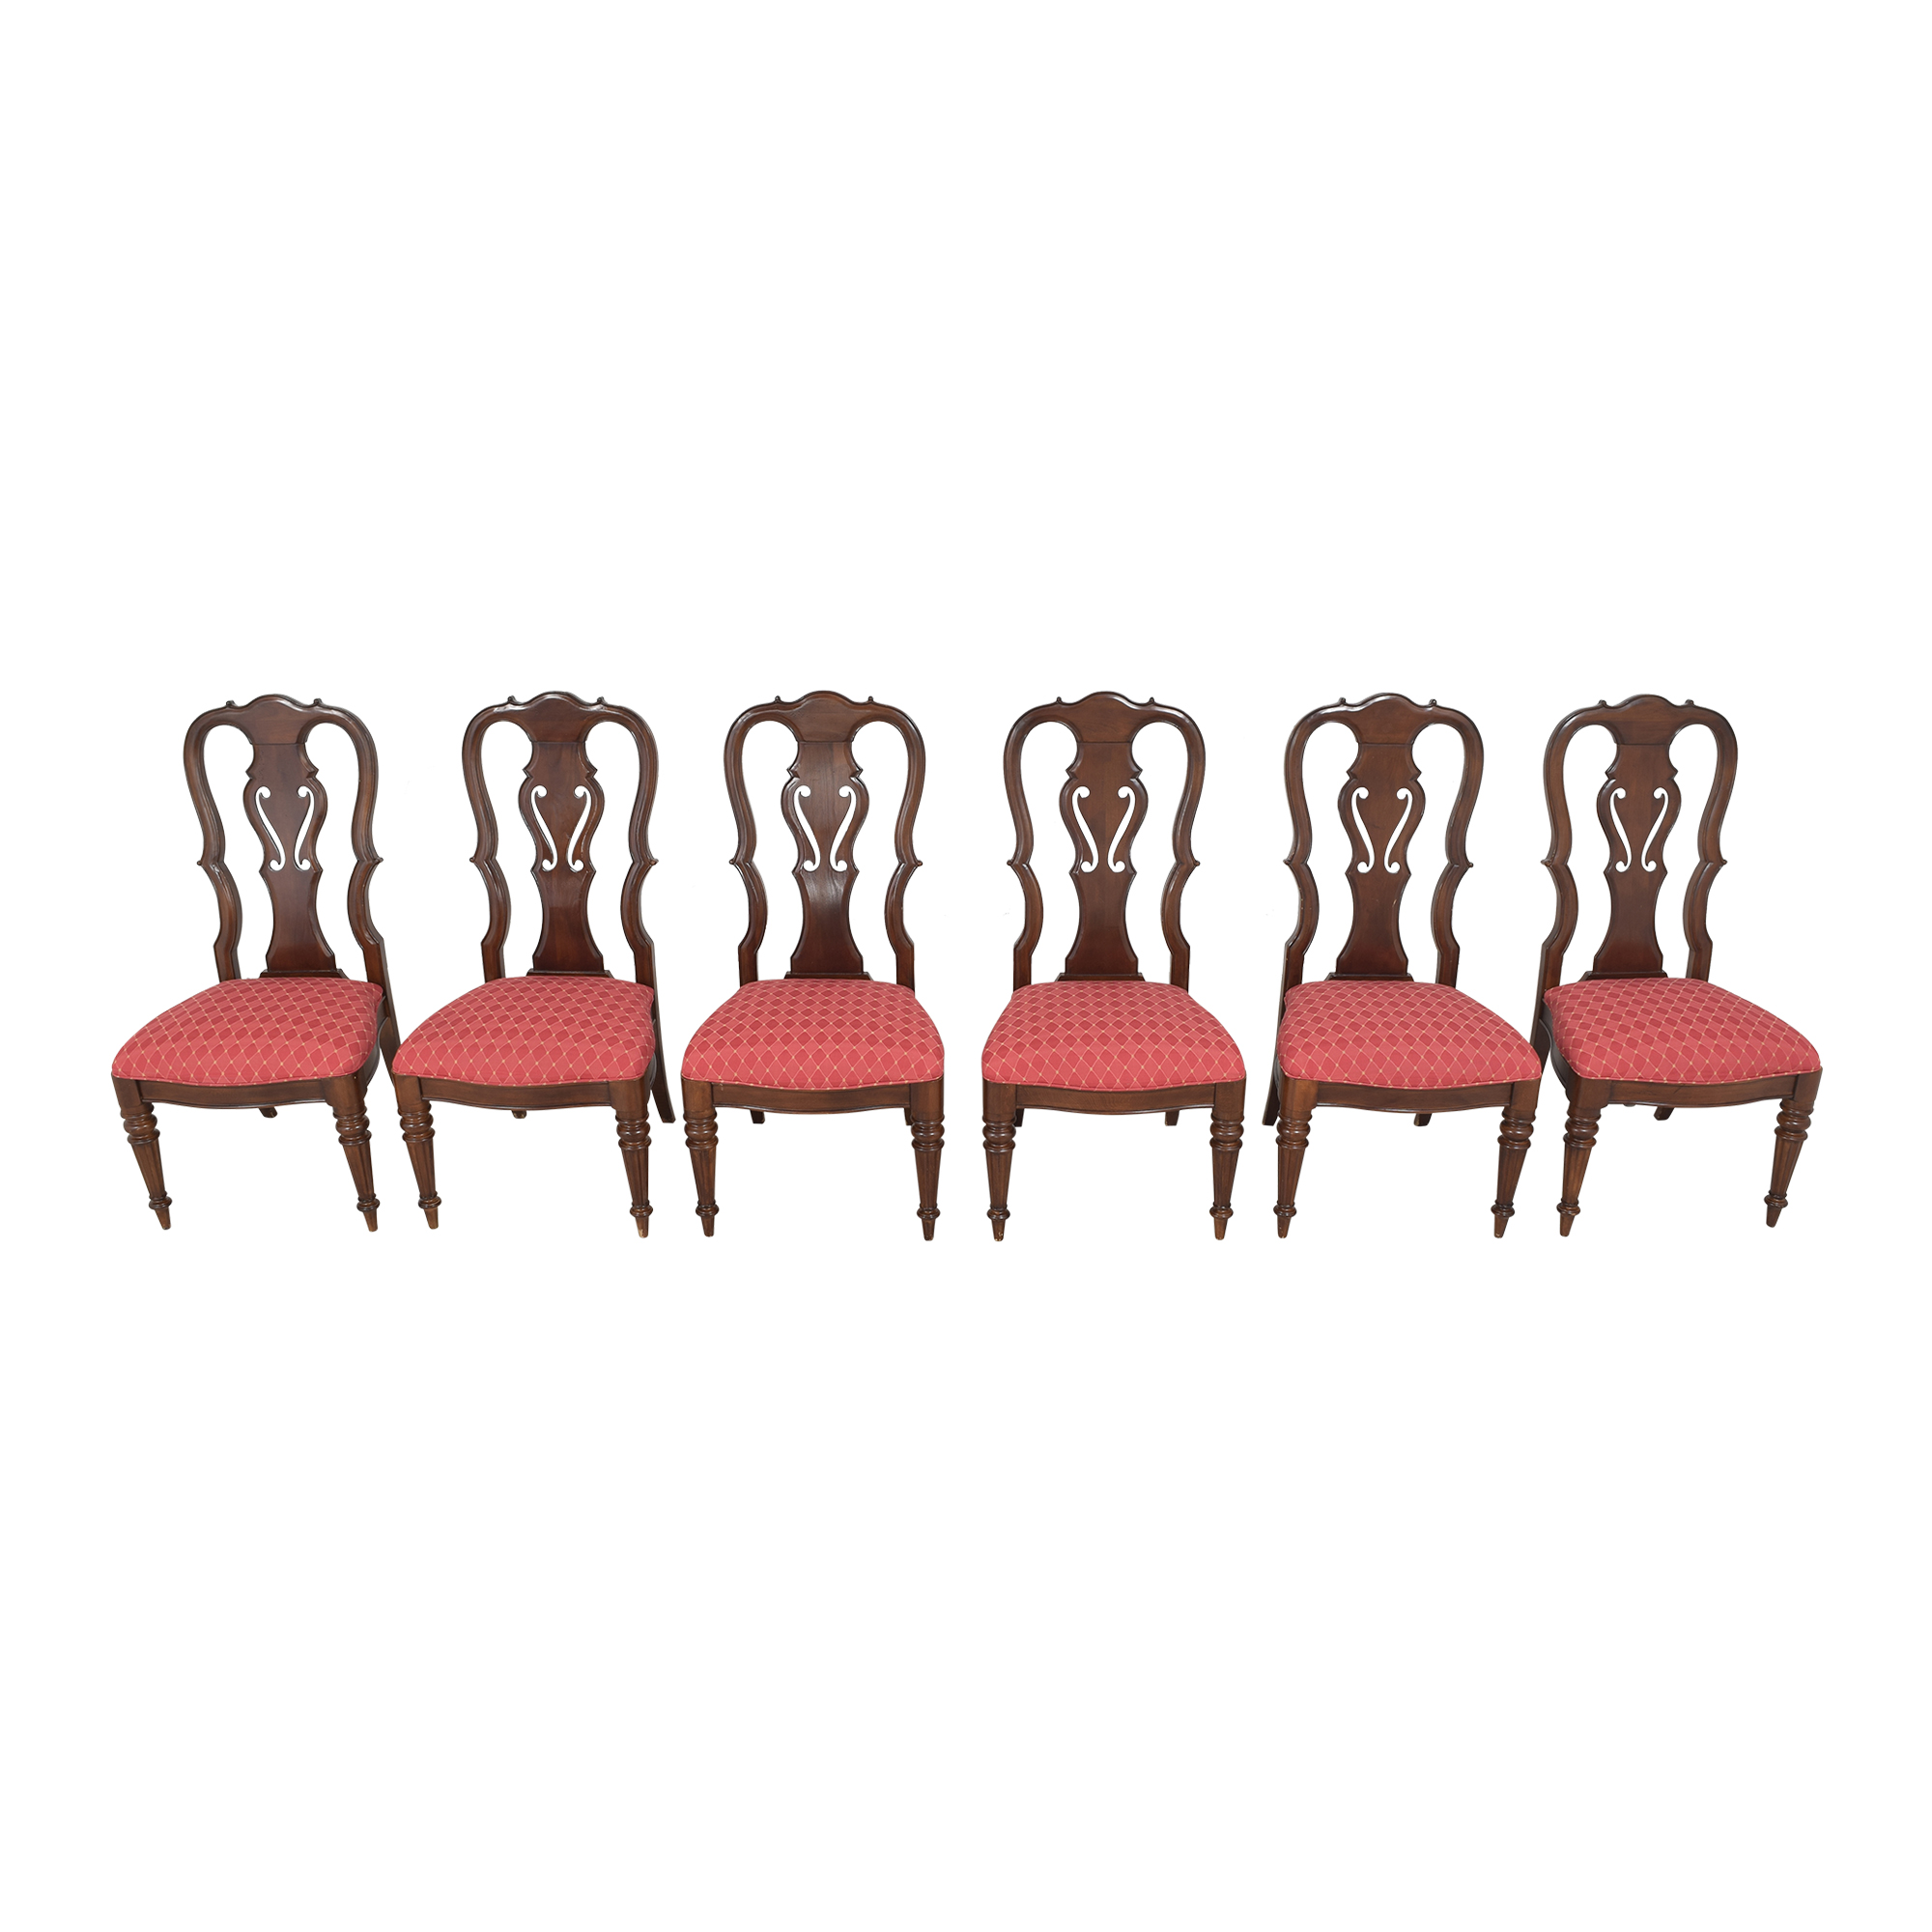 Pennsylvania House Pennsylvania House Upholstered Dining Chairs discount